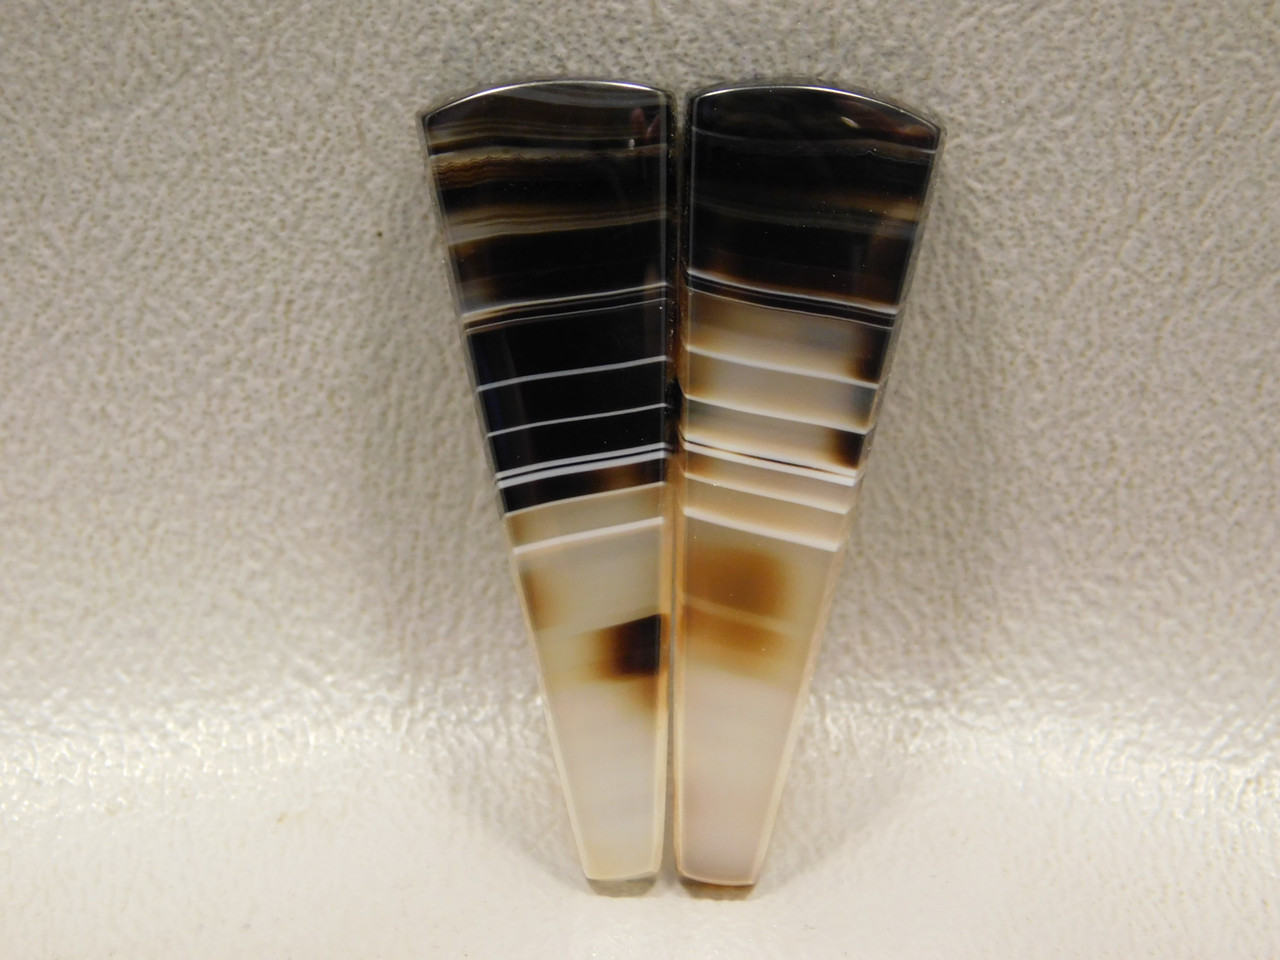 Tuxedo Agate Banded Black Matched Pair Cabochons #6